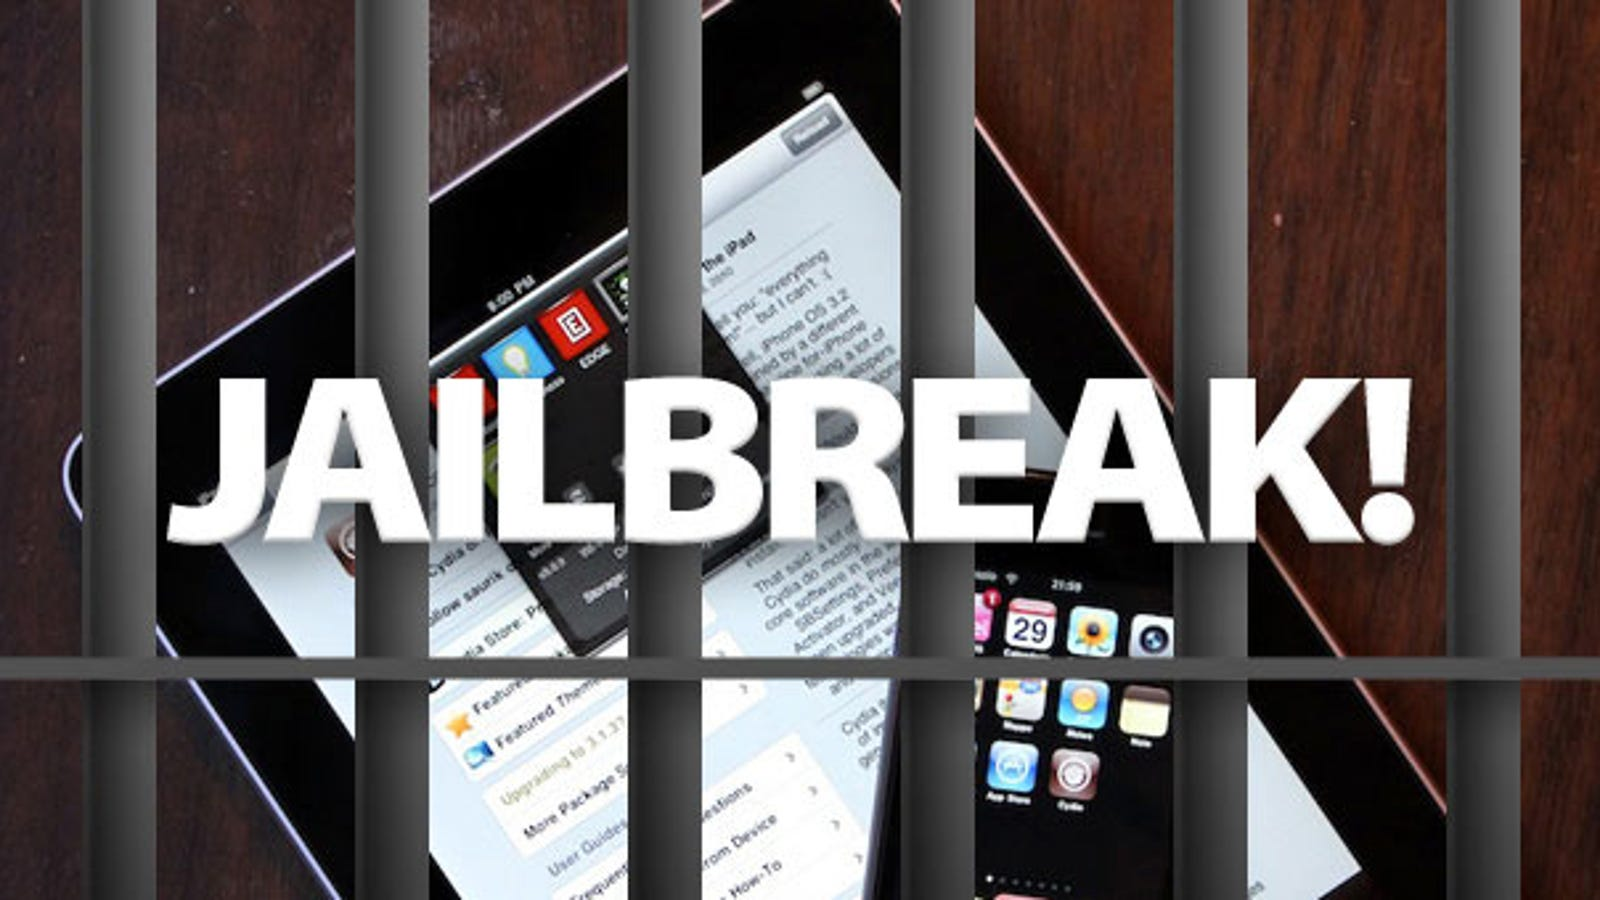 Madison : How to hack wifi on iphone jailbreak